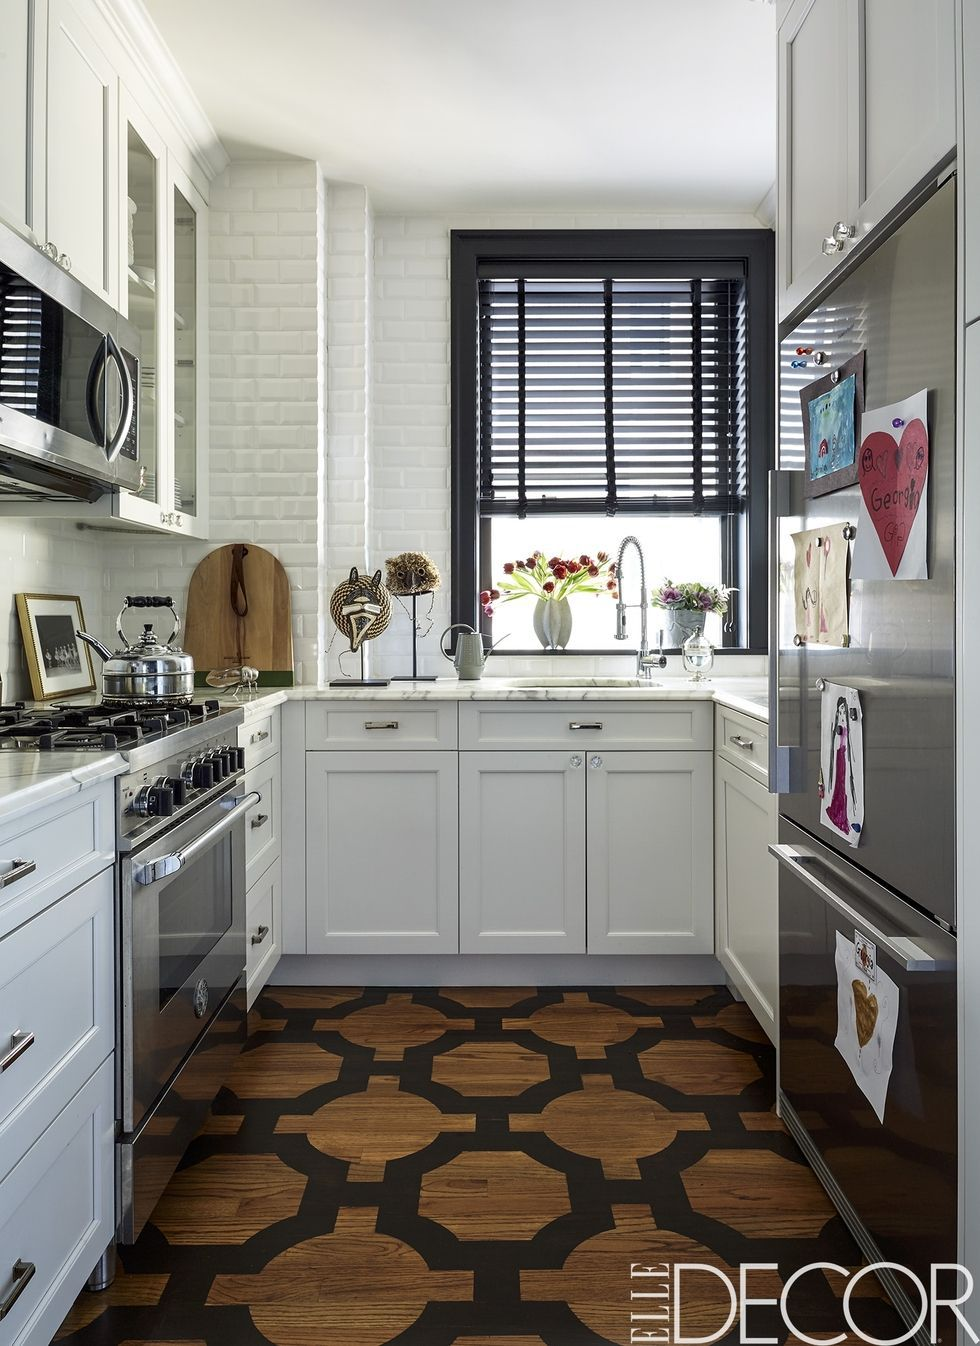 Over 50 ideas for designing small kitchens - decorating small kitchens TRJTKXB